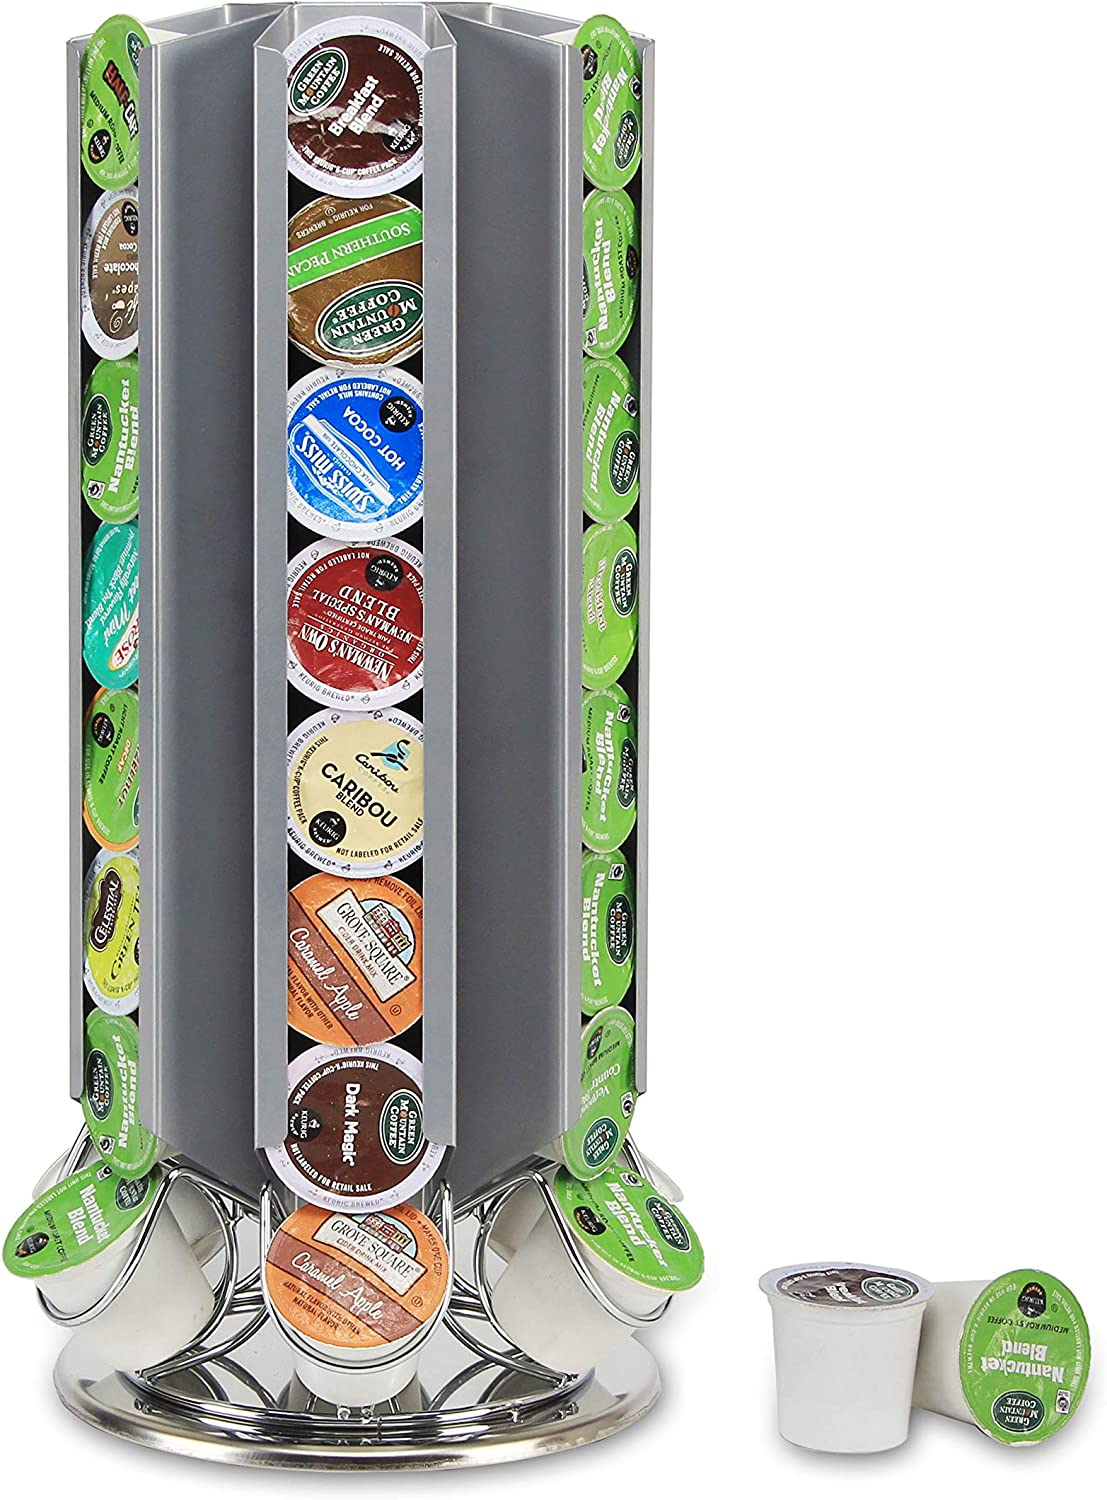 Flagship Pod stands for Outlet ☆ Free Shipping New York Mall Keurig K-cup pod Carousel Coffee Holder